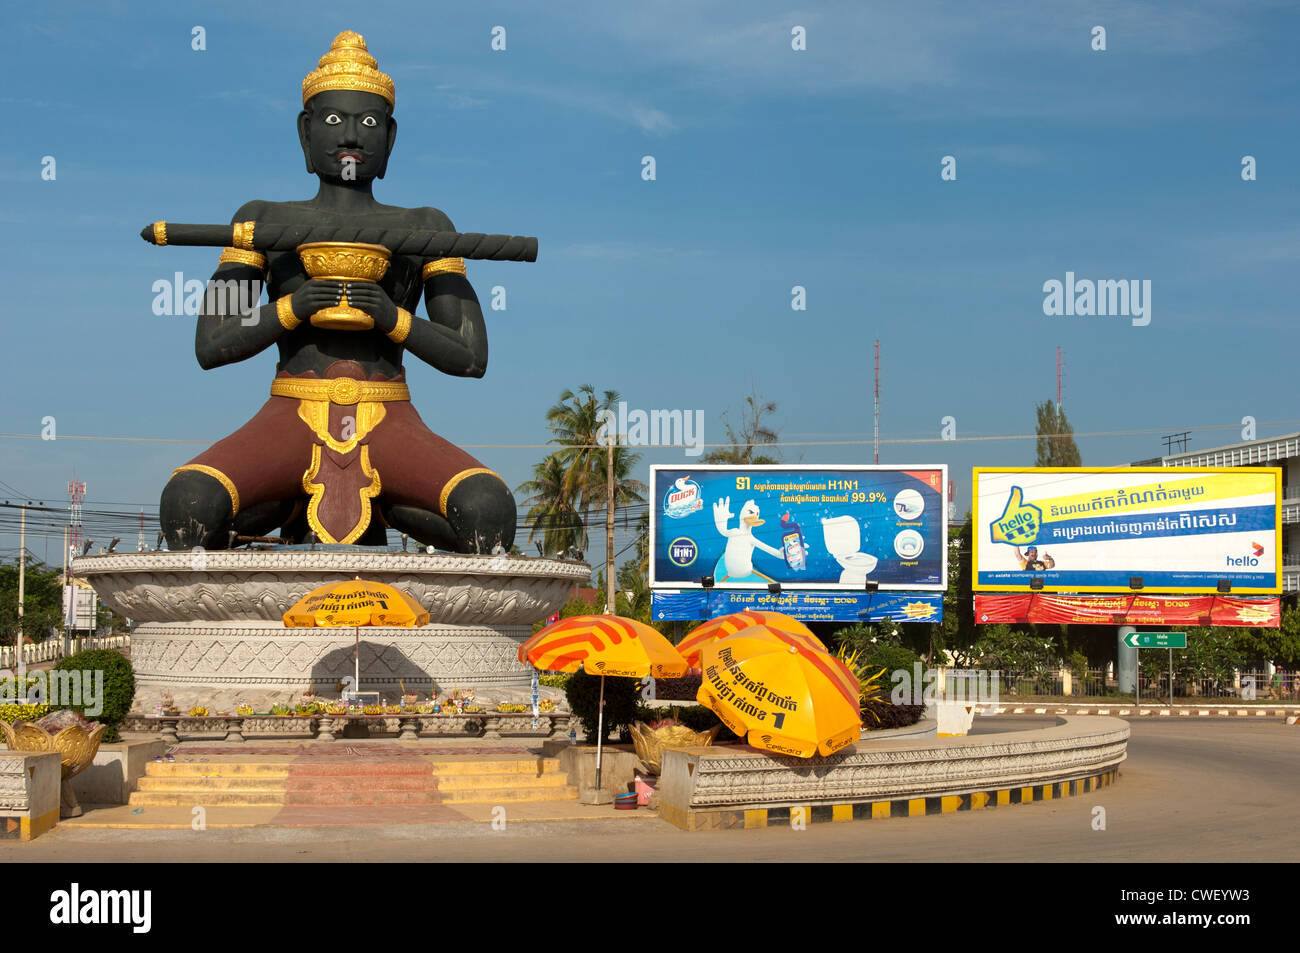 Statue of Ta Dambong (Black man) with his magic stick next to publicity posters, Battambang, Cambodia - Stock Image